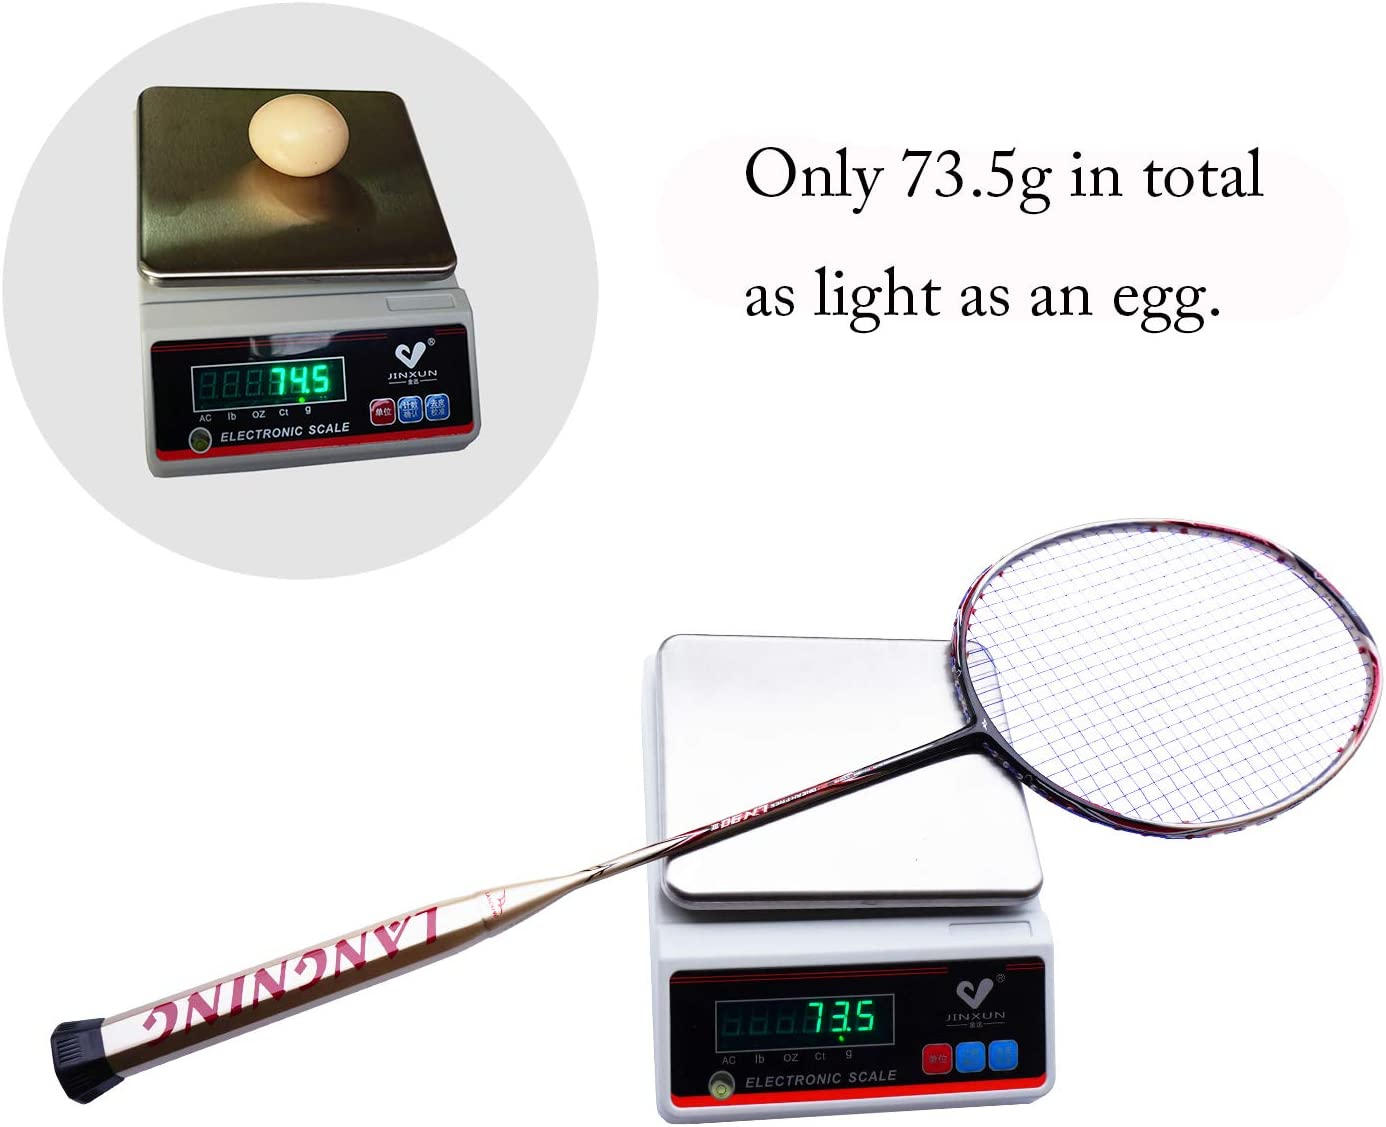 68g Badminton Racquet Light Racket Set Carbon Fiber 7u Best Tournament Single Shuttle Bat Carrying Bag